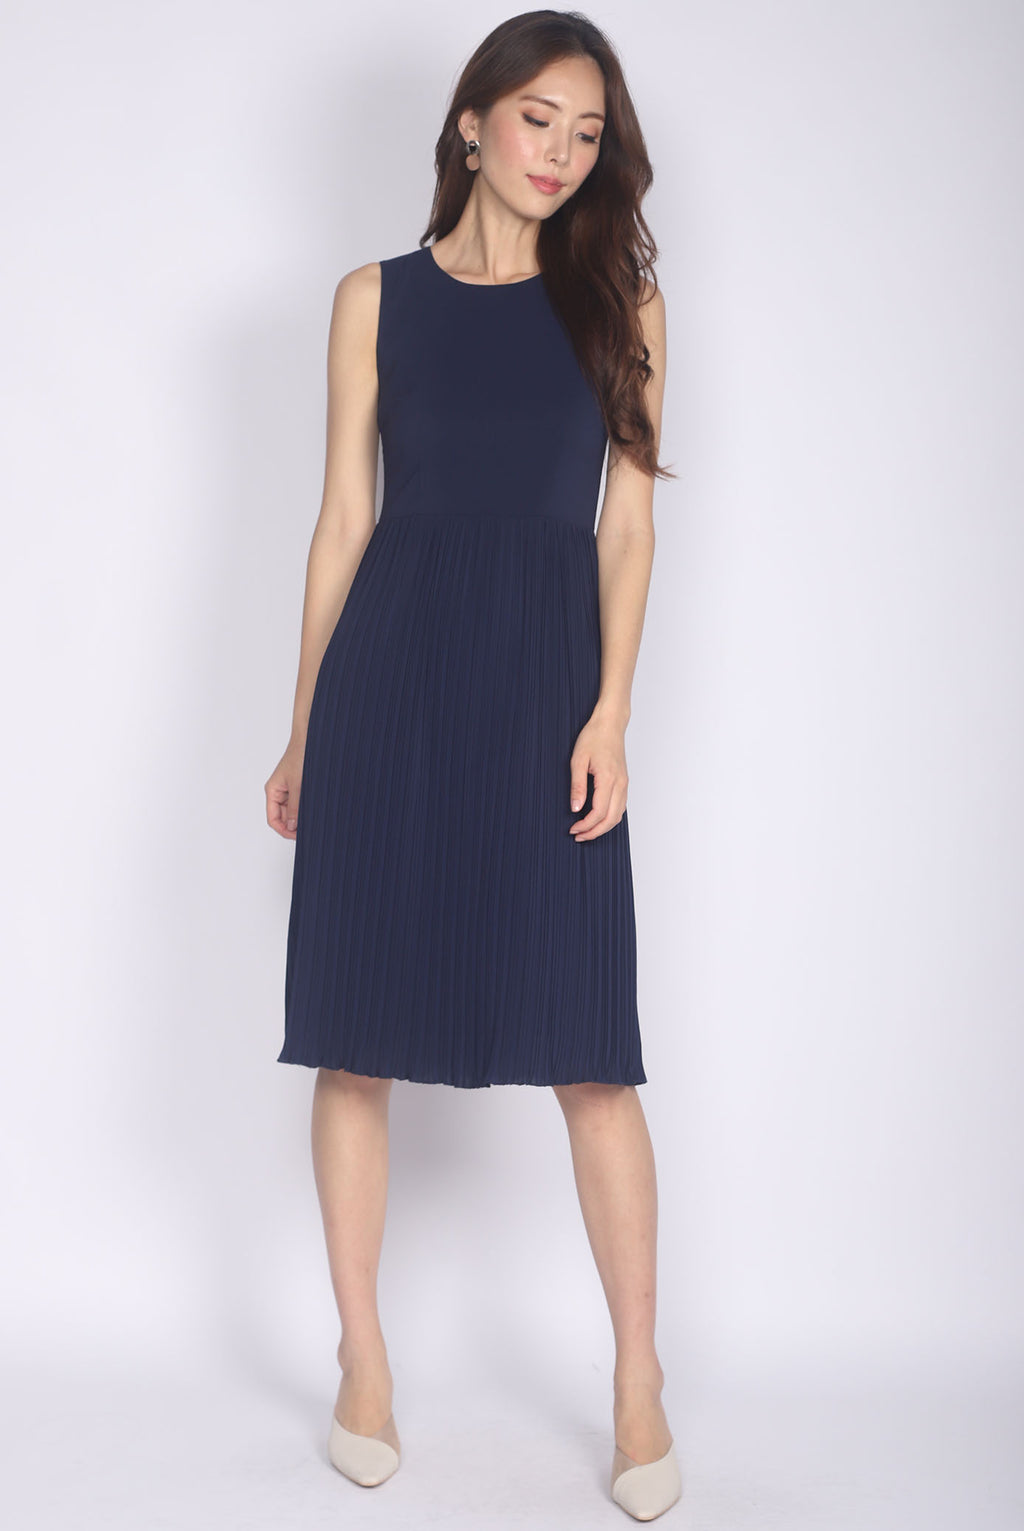 TDC Aliette Pleated Midi Dress In Navy Blue